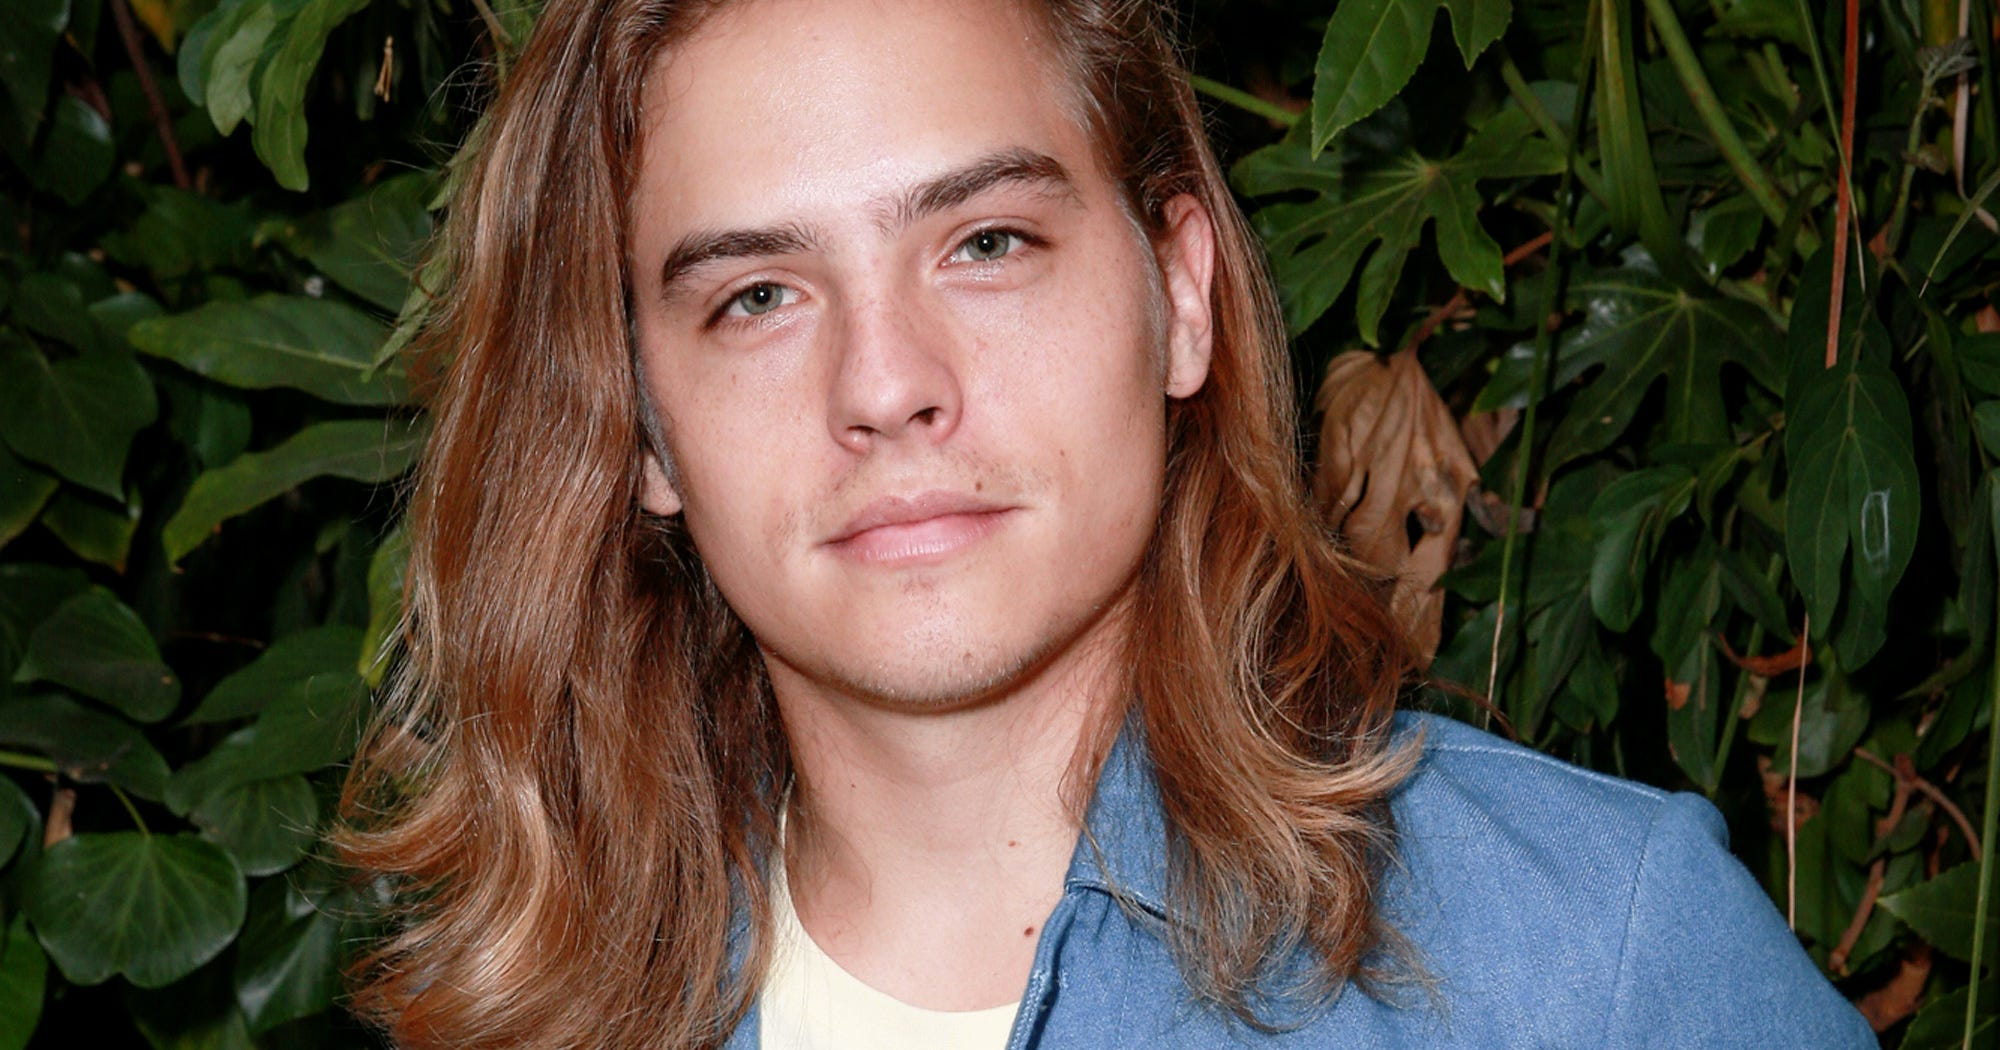 dylan sprouse return to acting new movie master brewer